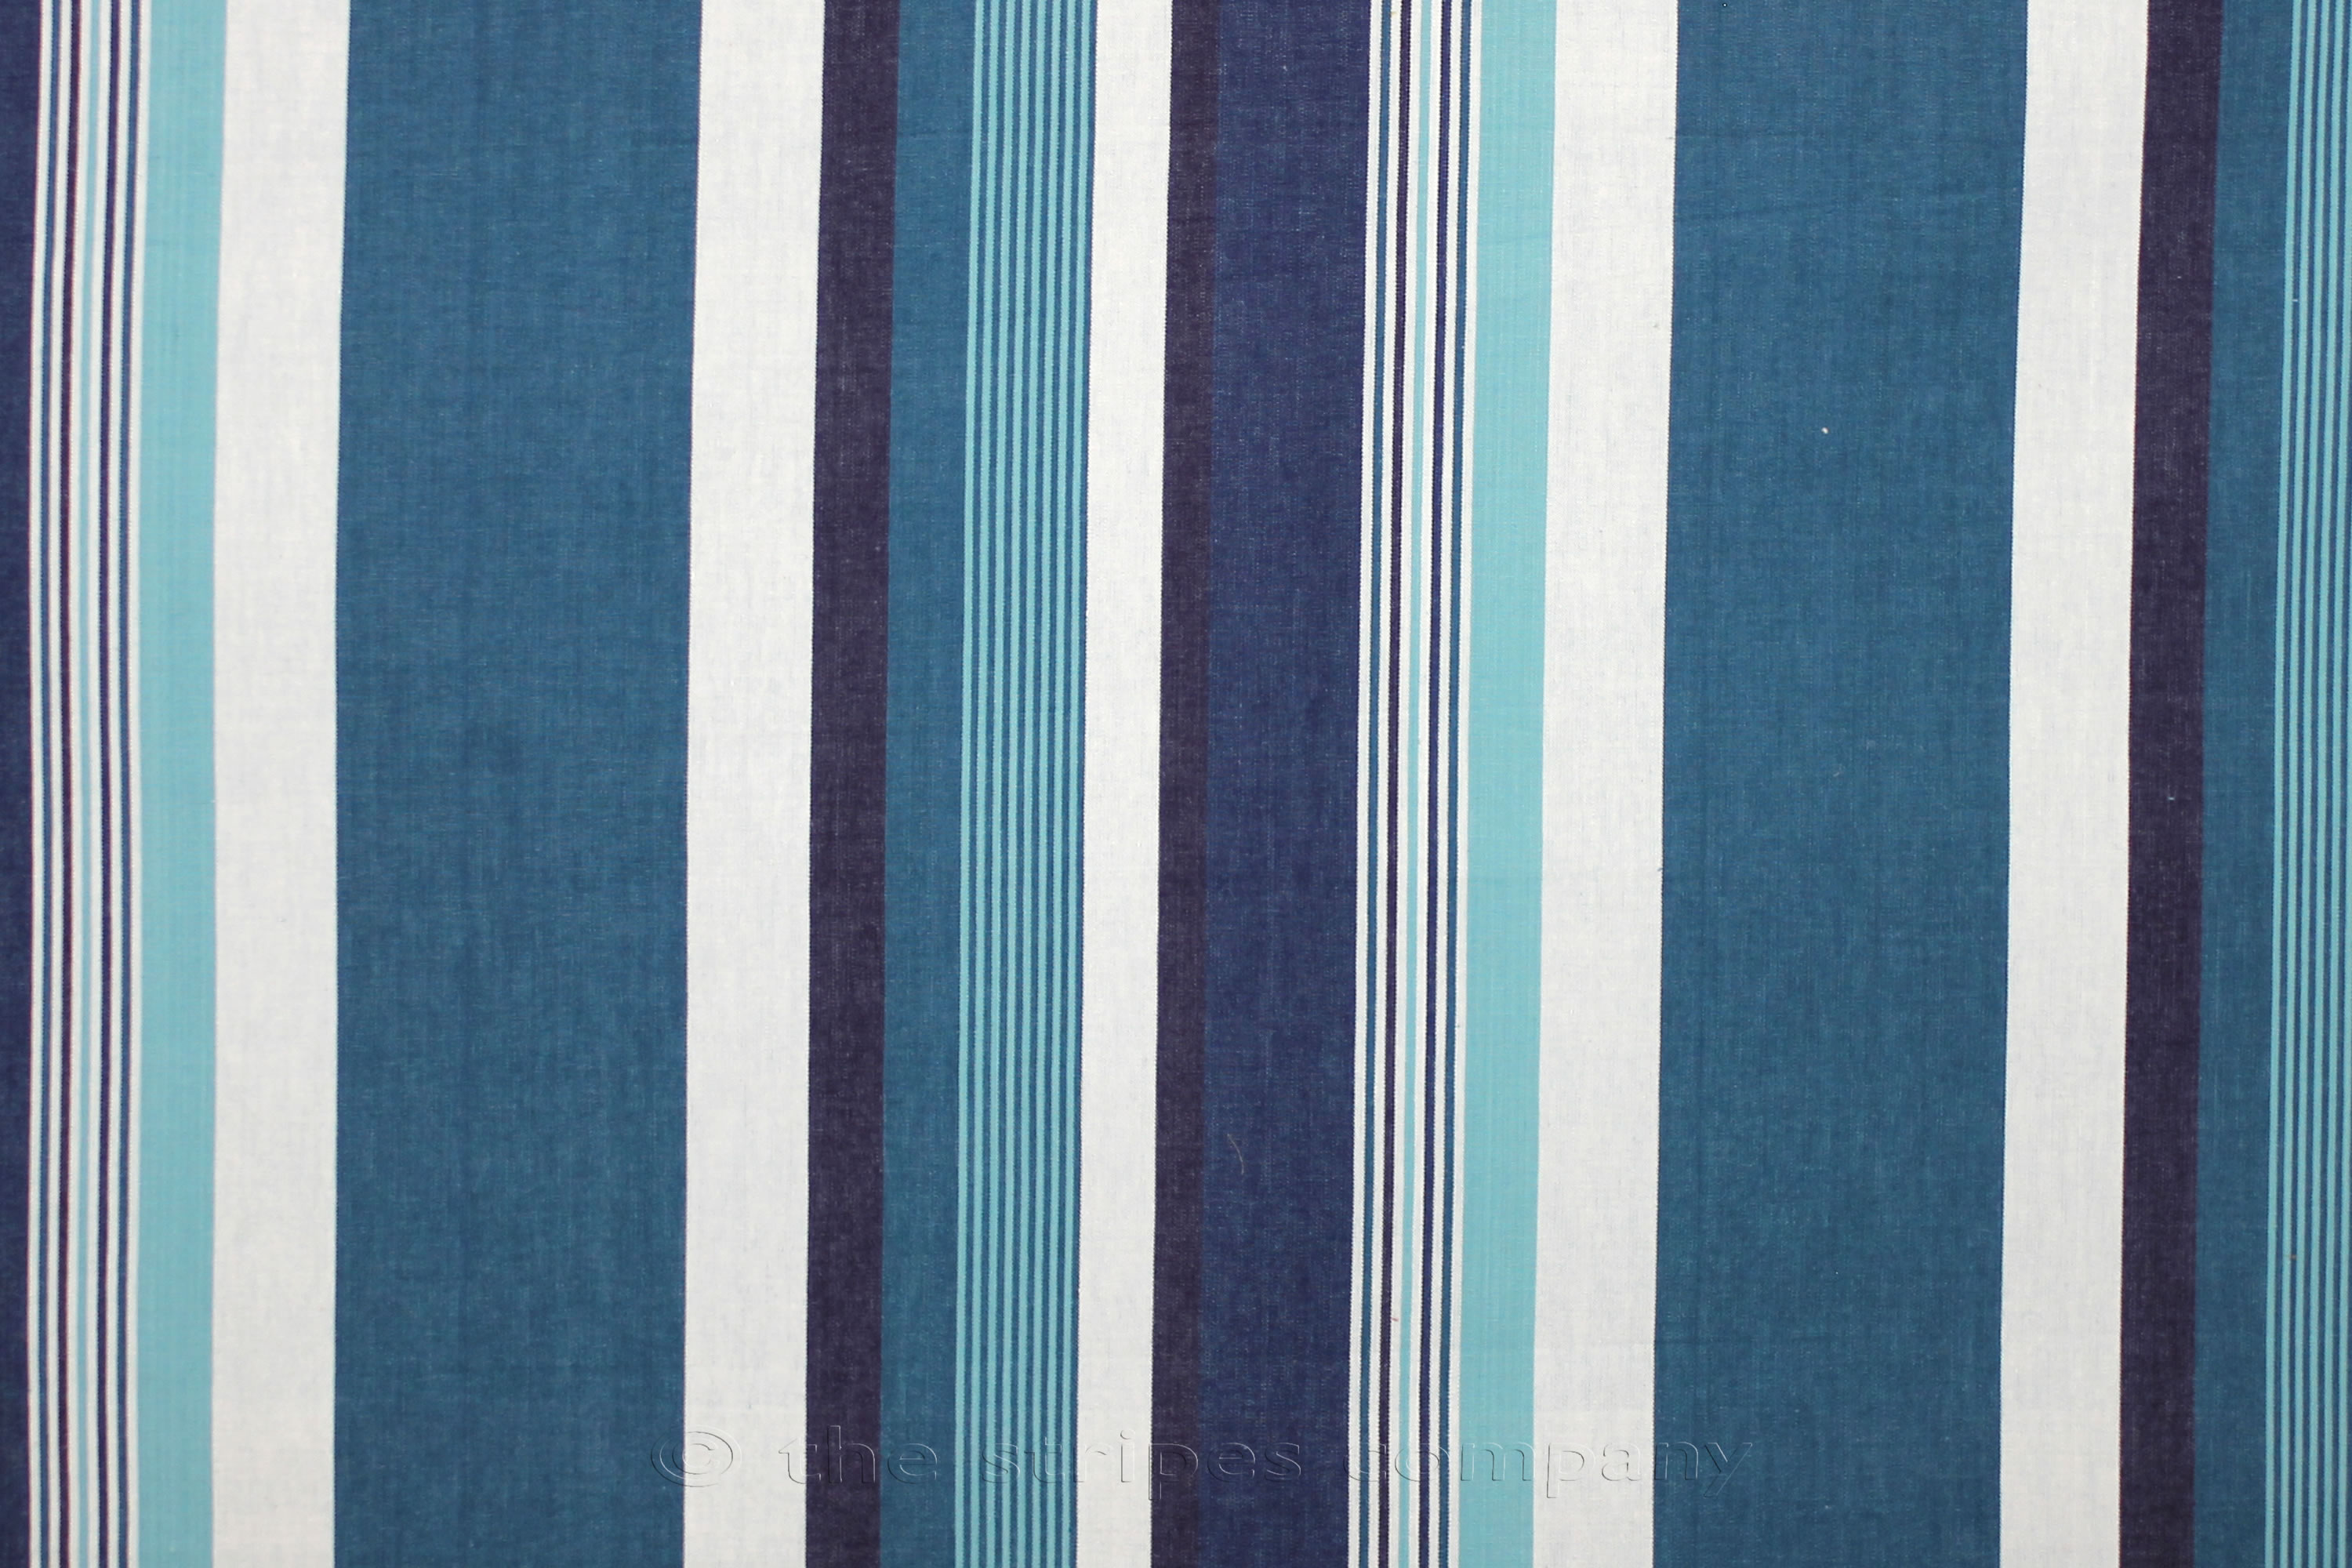 Teal Striped Fabrics | Stripe Cotton Fabrics | Striped Curtain Fabrics | Upholstery Fabrics  Swing Stripes